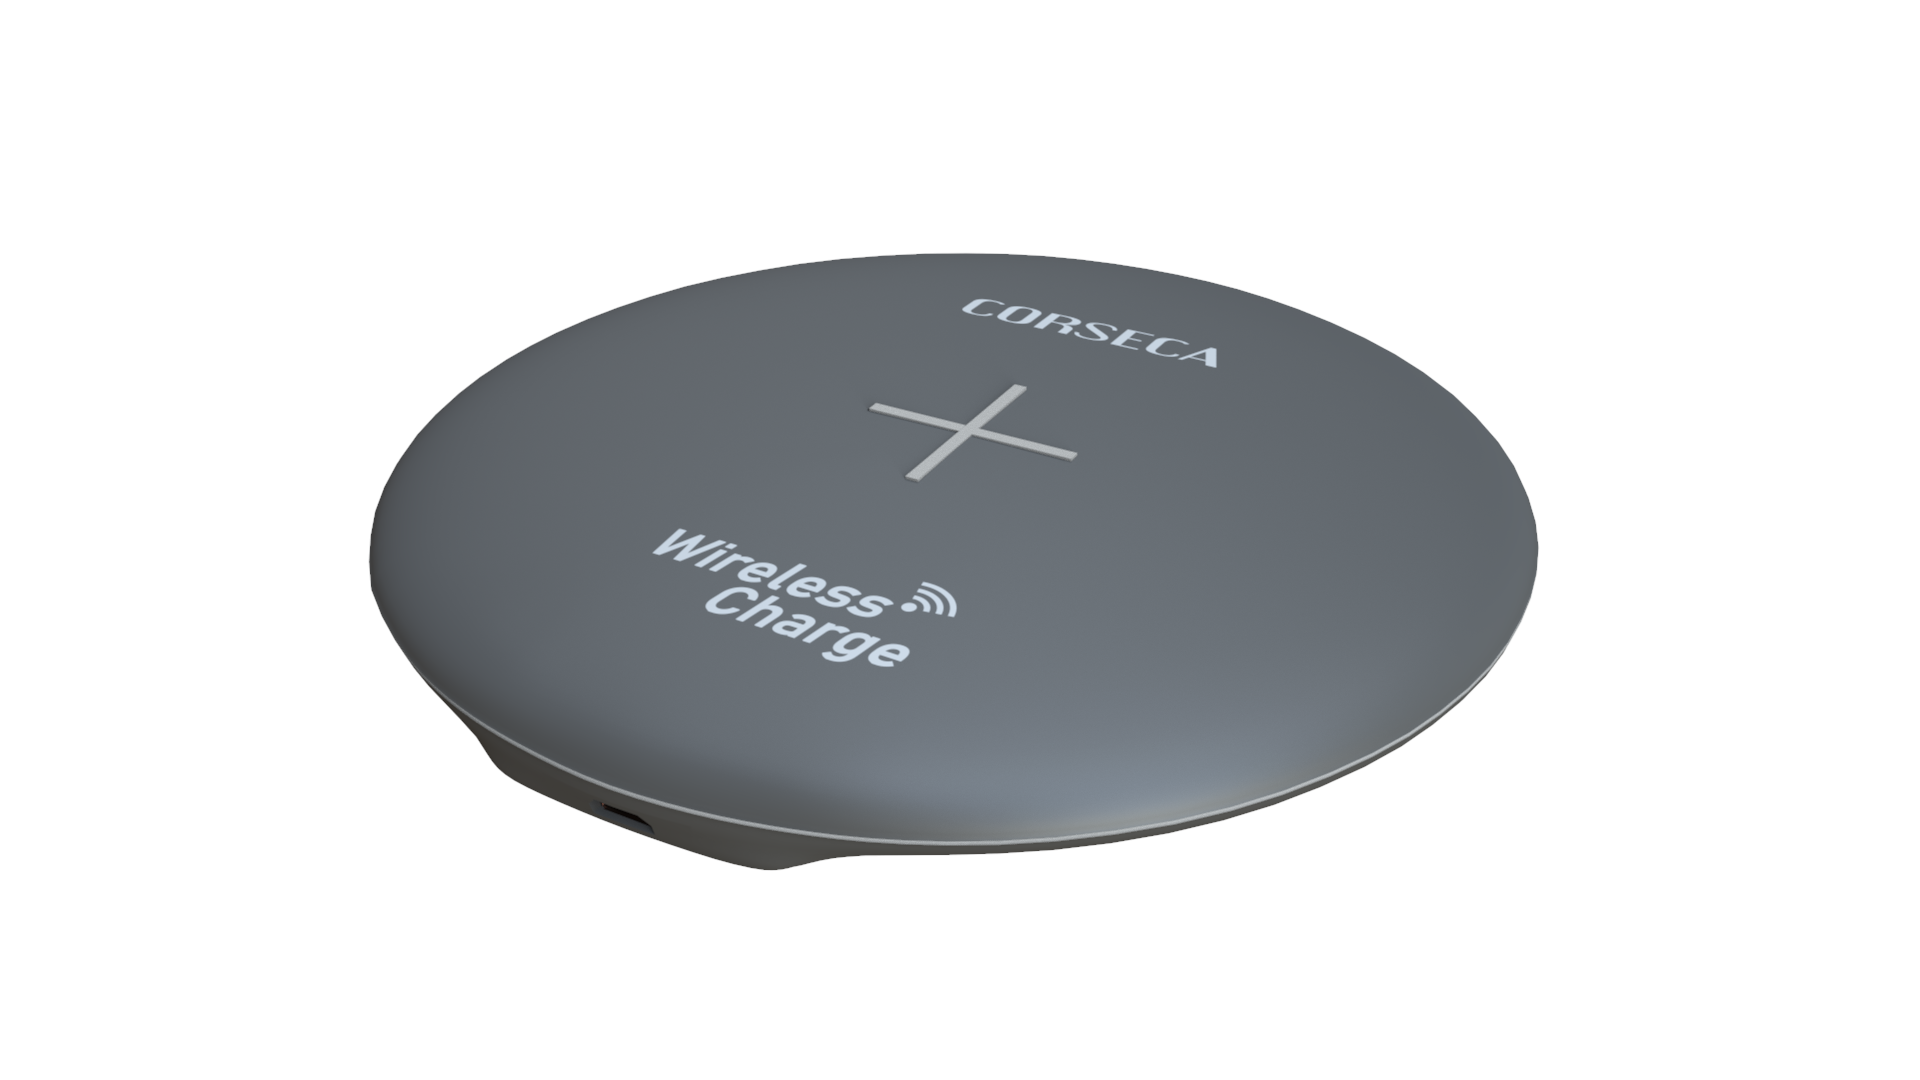 Corseca Wireless Charger